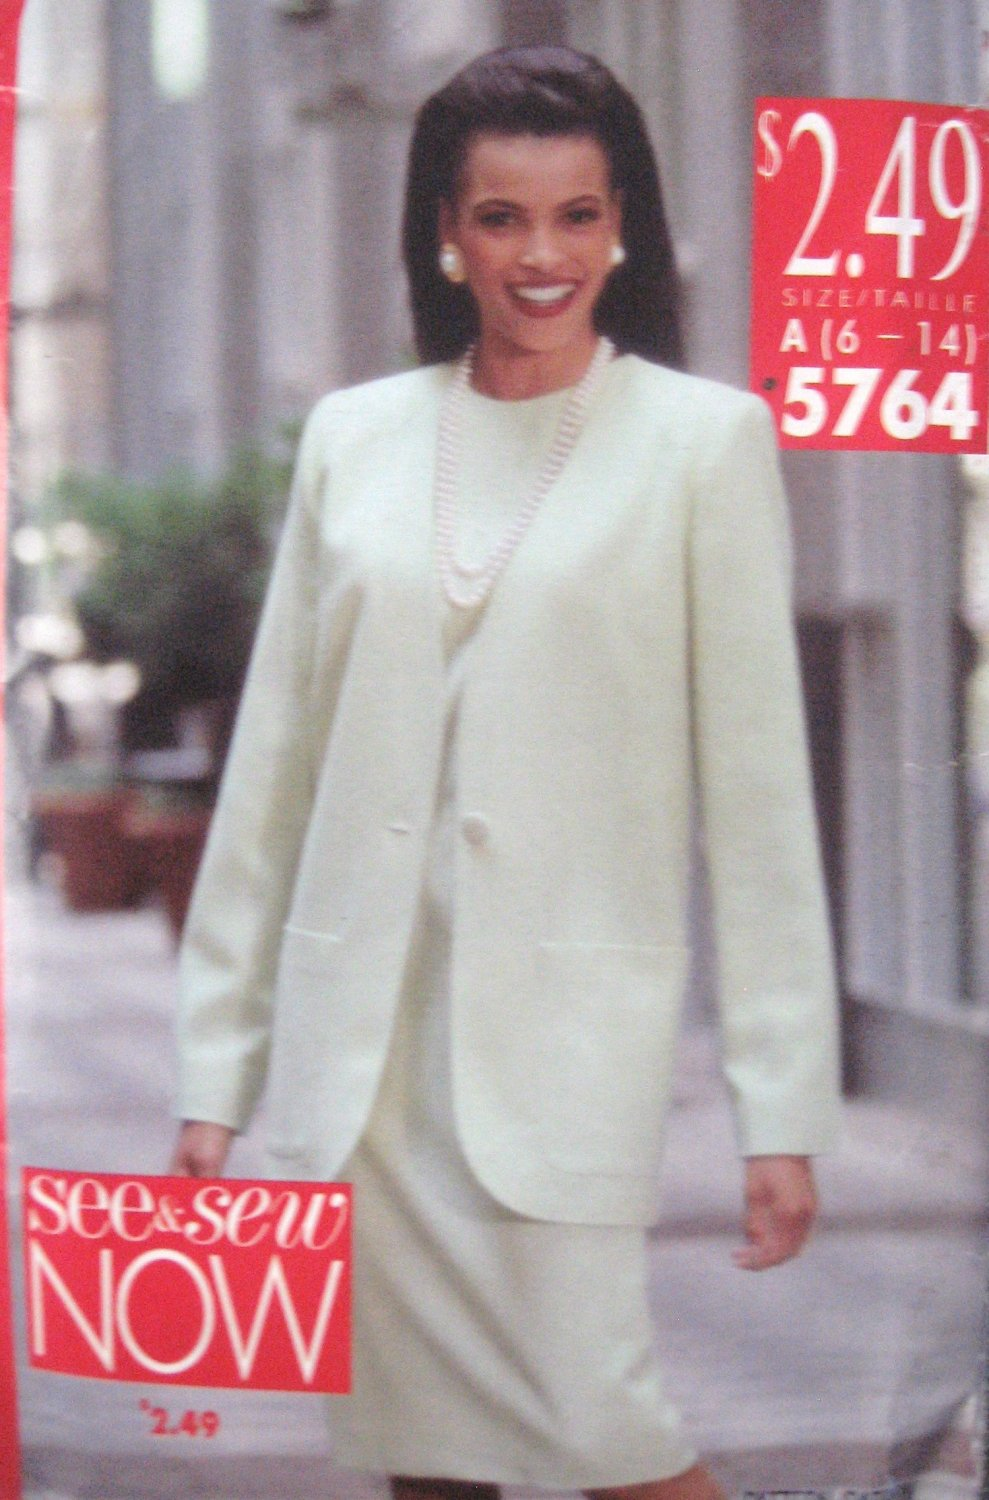 Butterick See & Sew 5764 Misses'  Jacket and Dress Sewing Pattern sz 6 - 14 Uncut